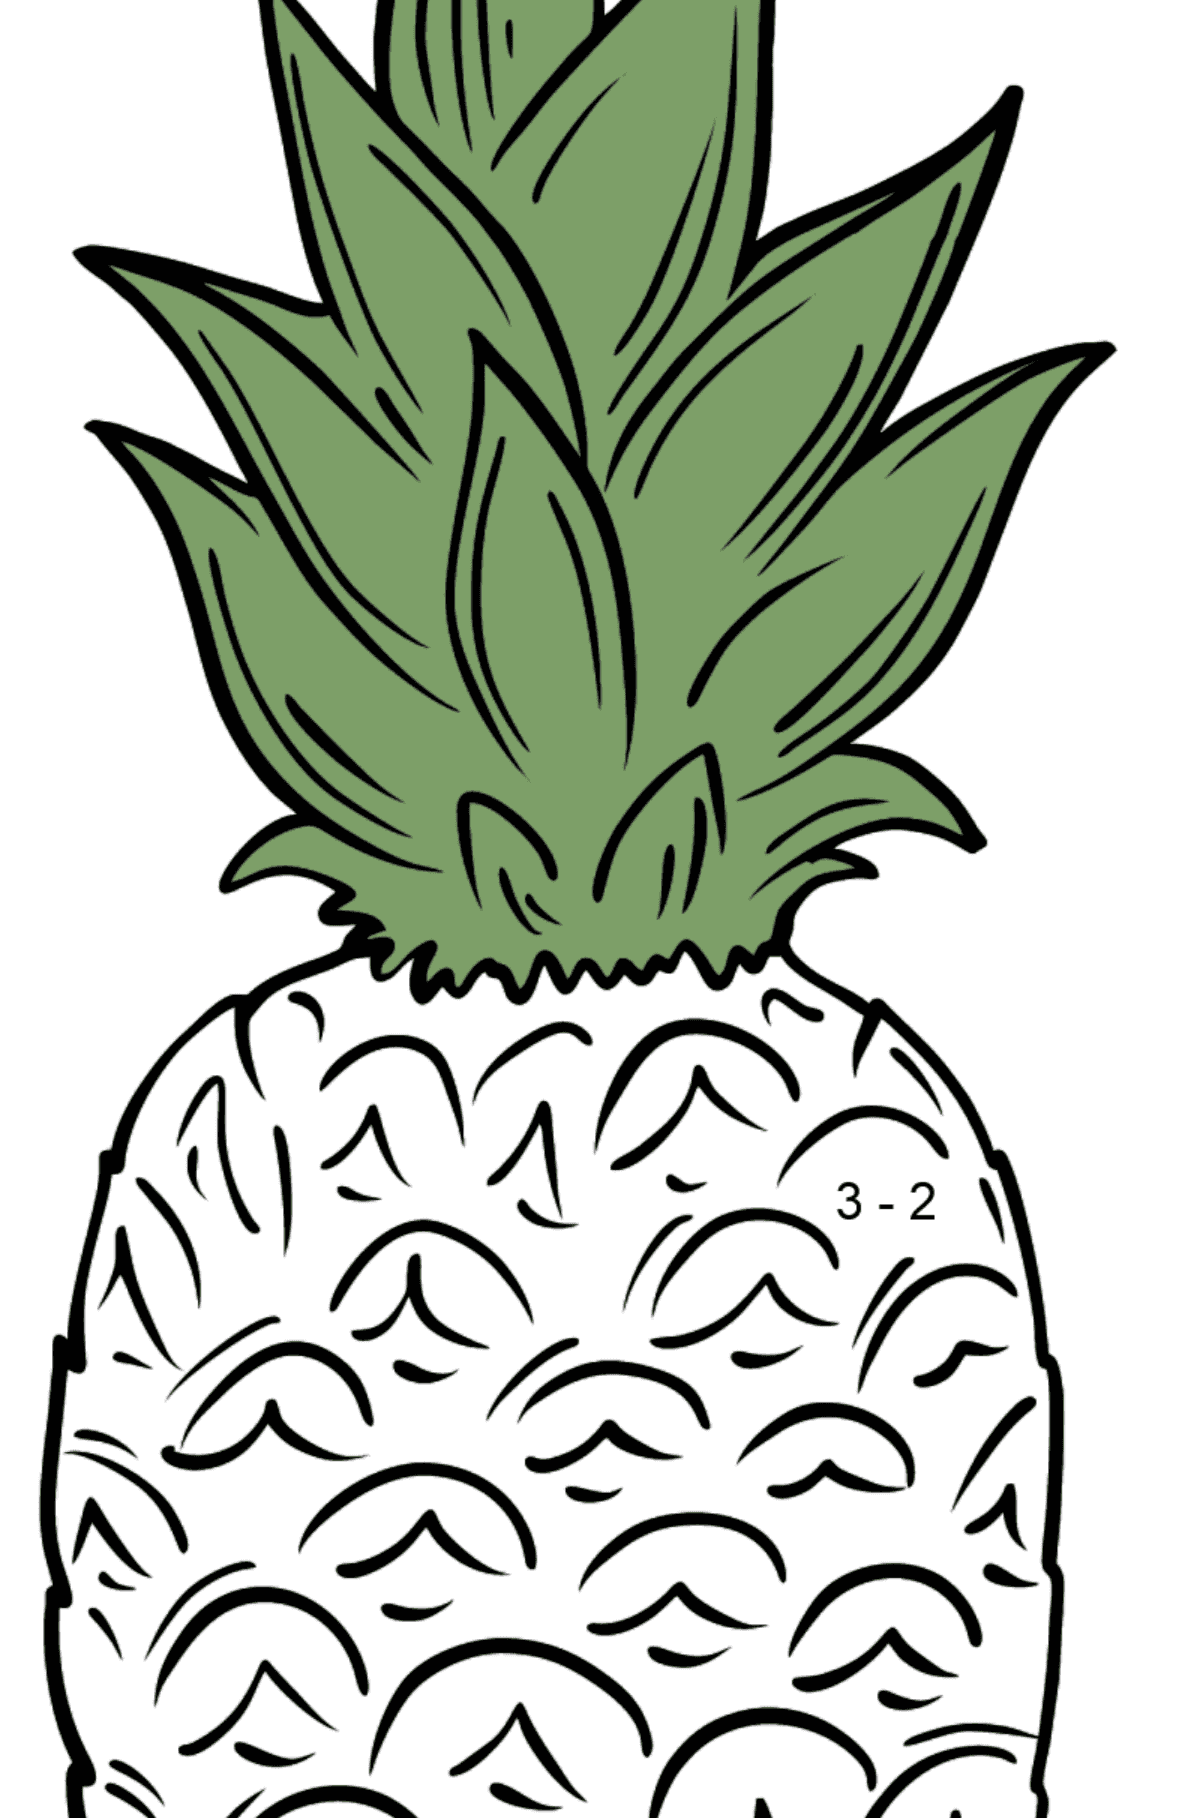 Pineapple coloring page - Math Coloring - Subtraction for Kids